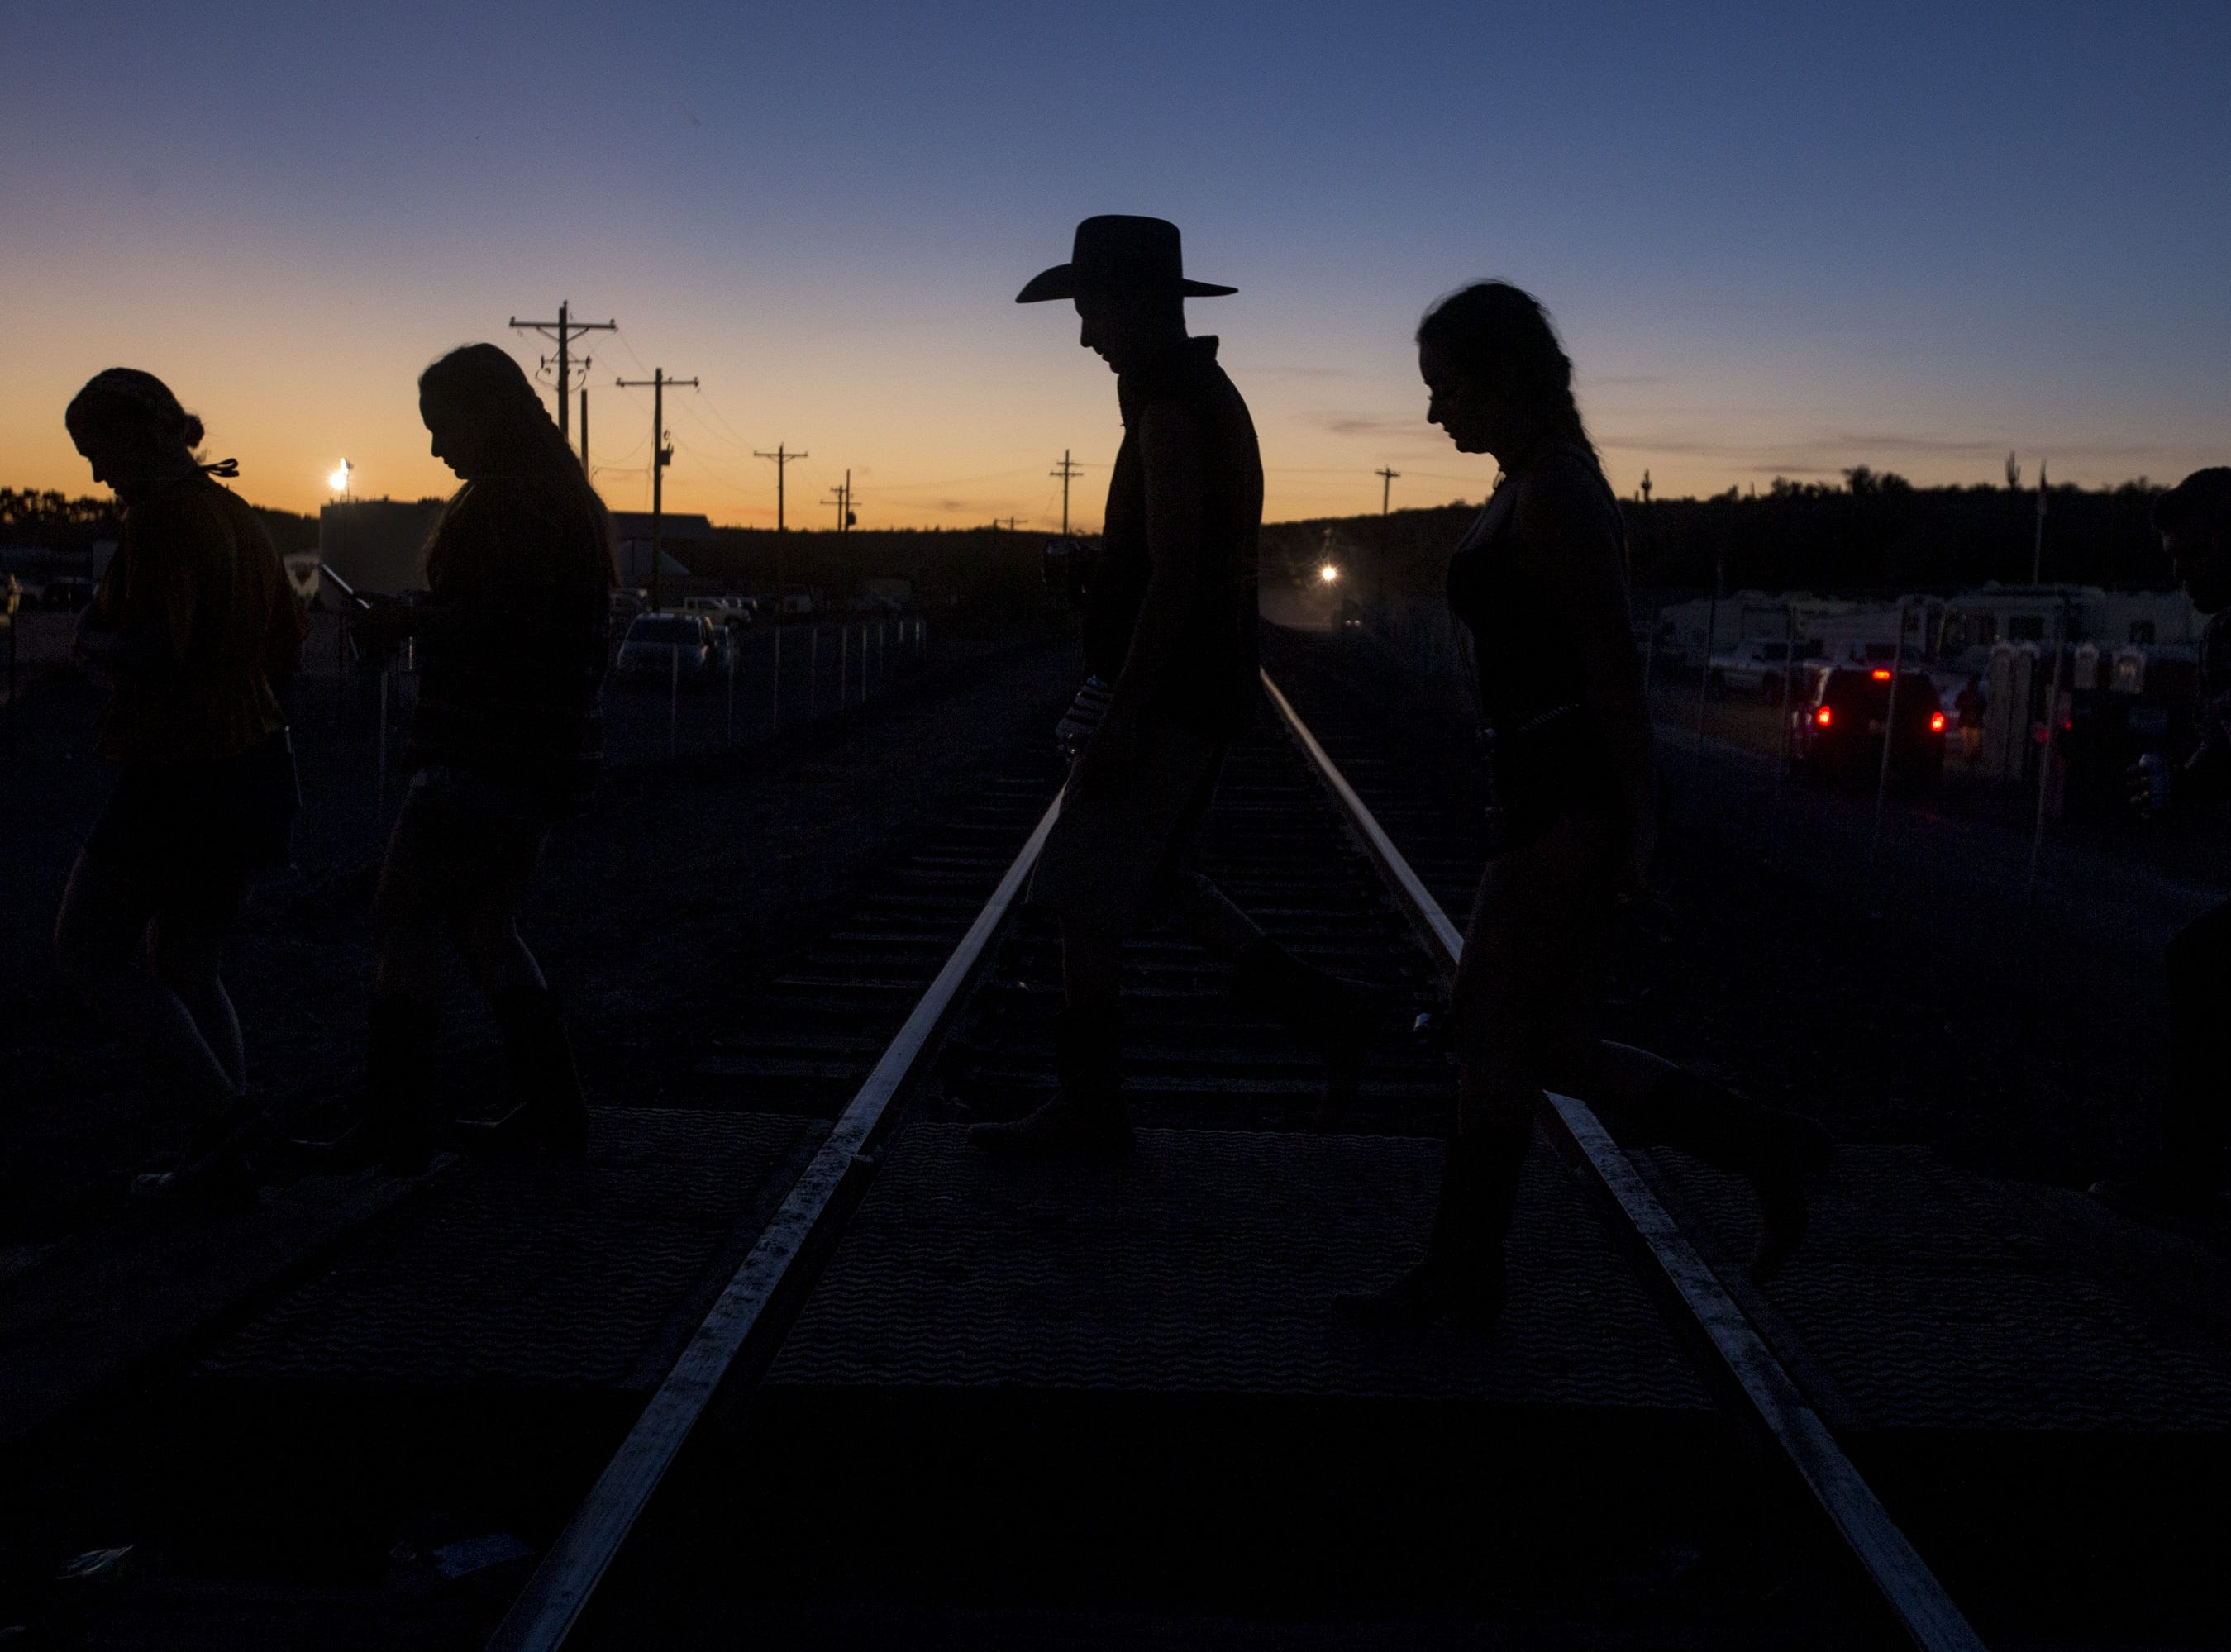 Festivalgoers cross train tracks on Saturday, April 13, 2019, during Day 3 of Country Thunder Arizona in Florence, Ariz.